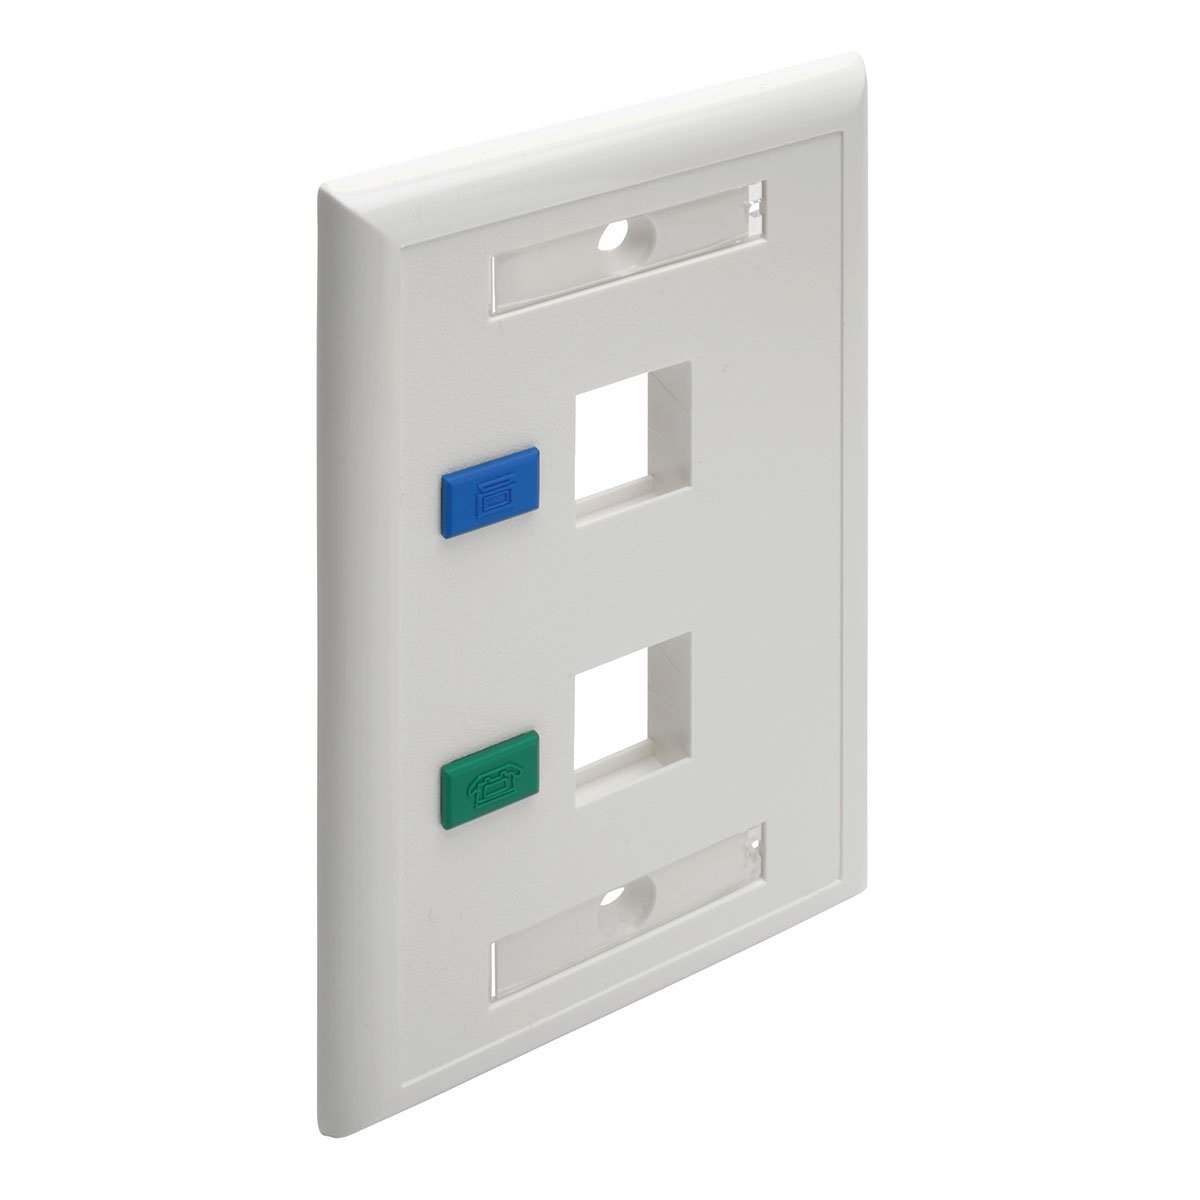 Amazing Cat5 Wall Plate Wiring Color Codes Rca Wall Plate Tph552r ...